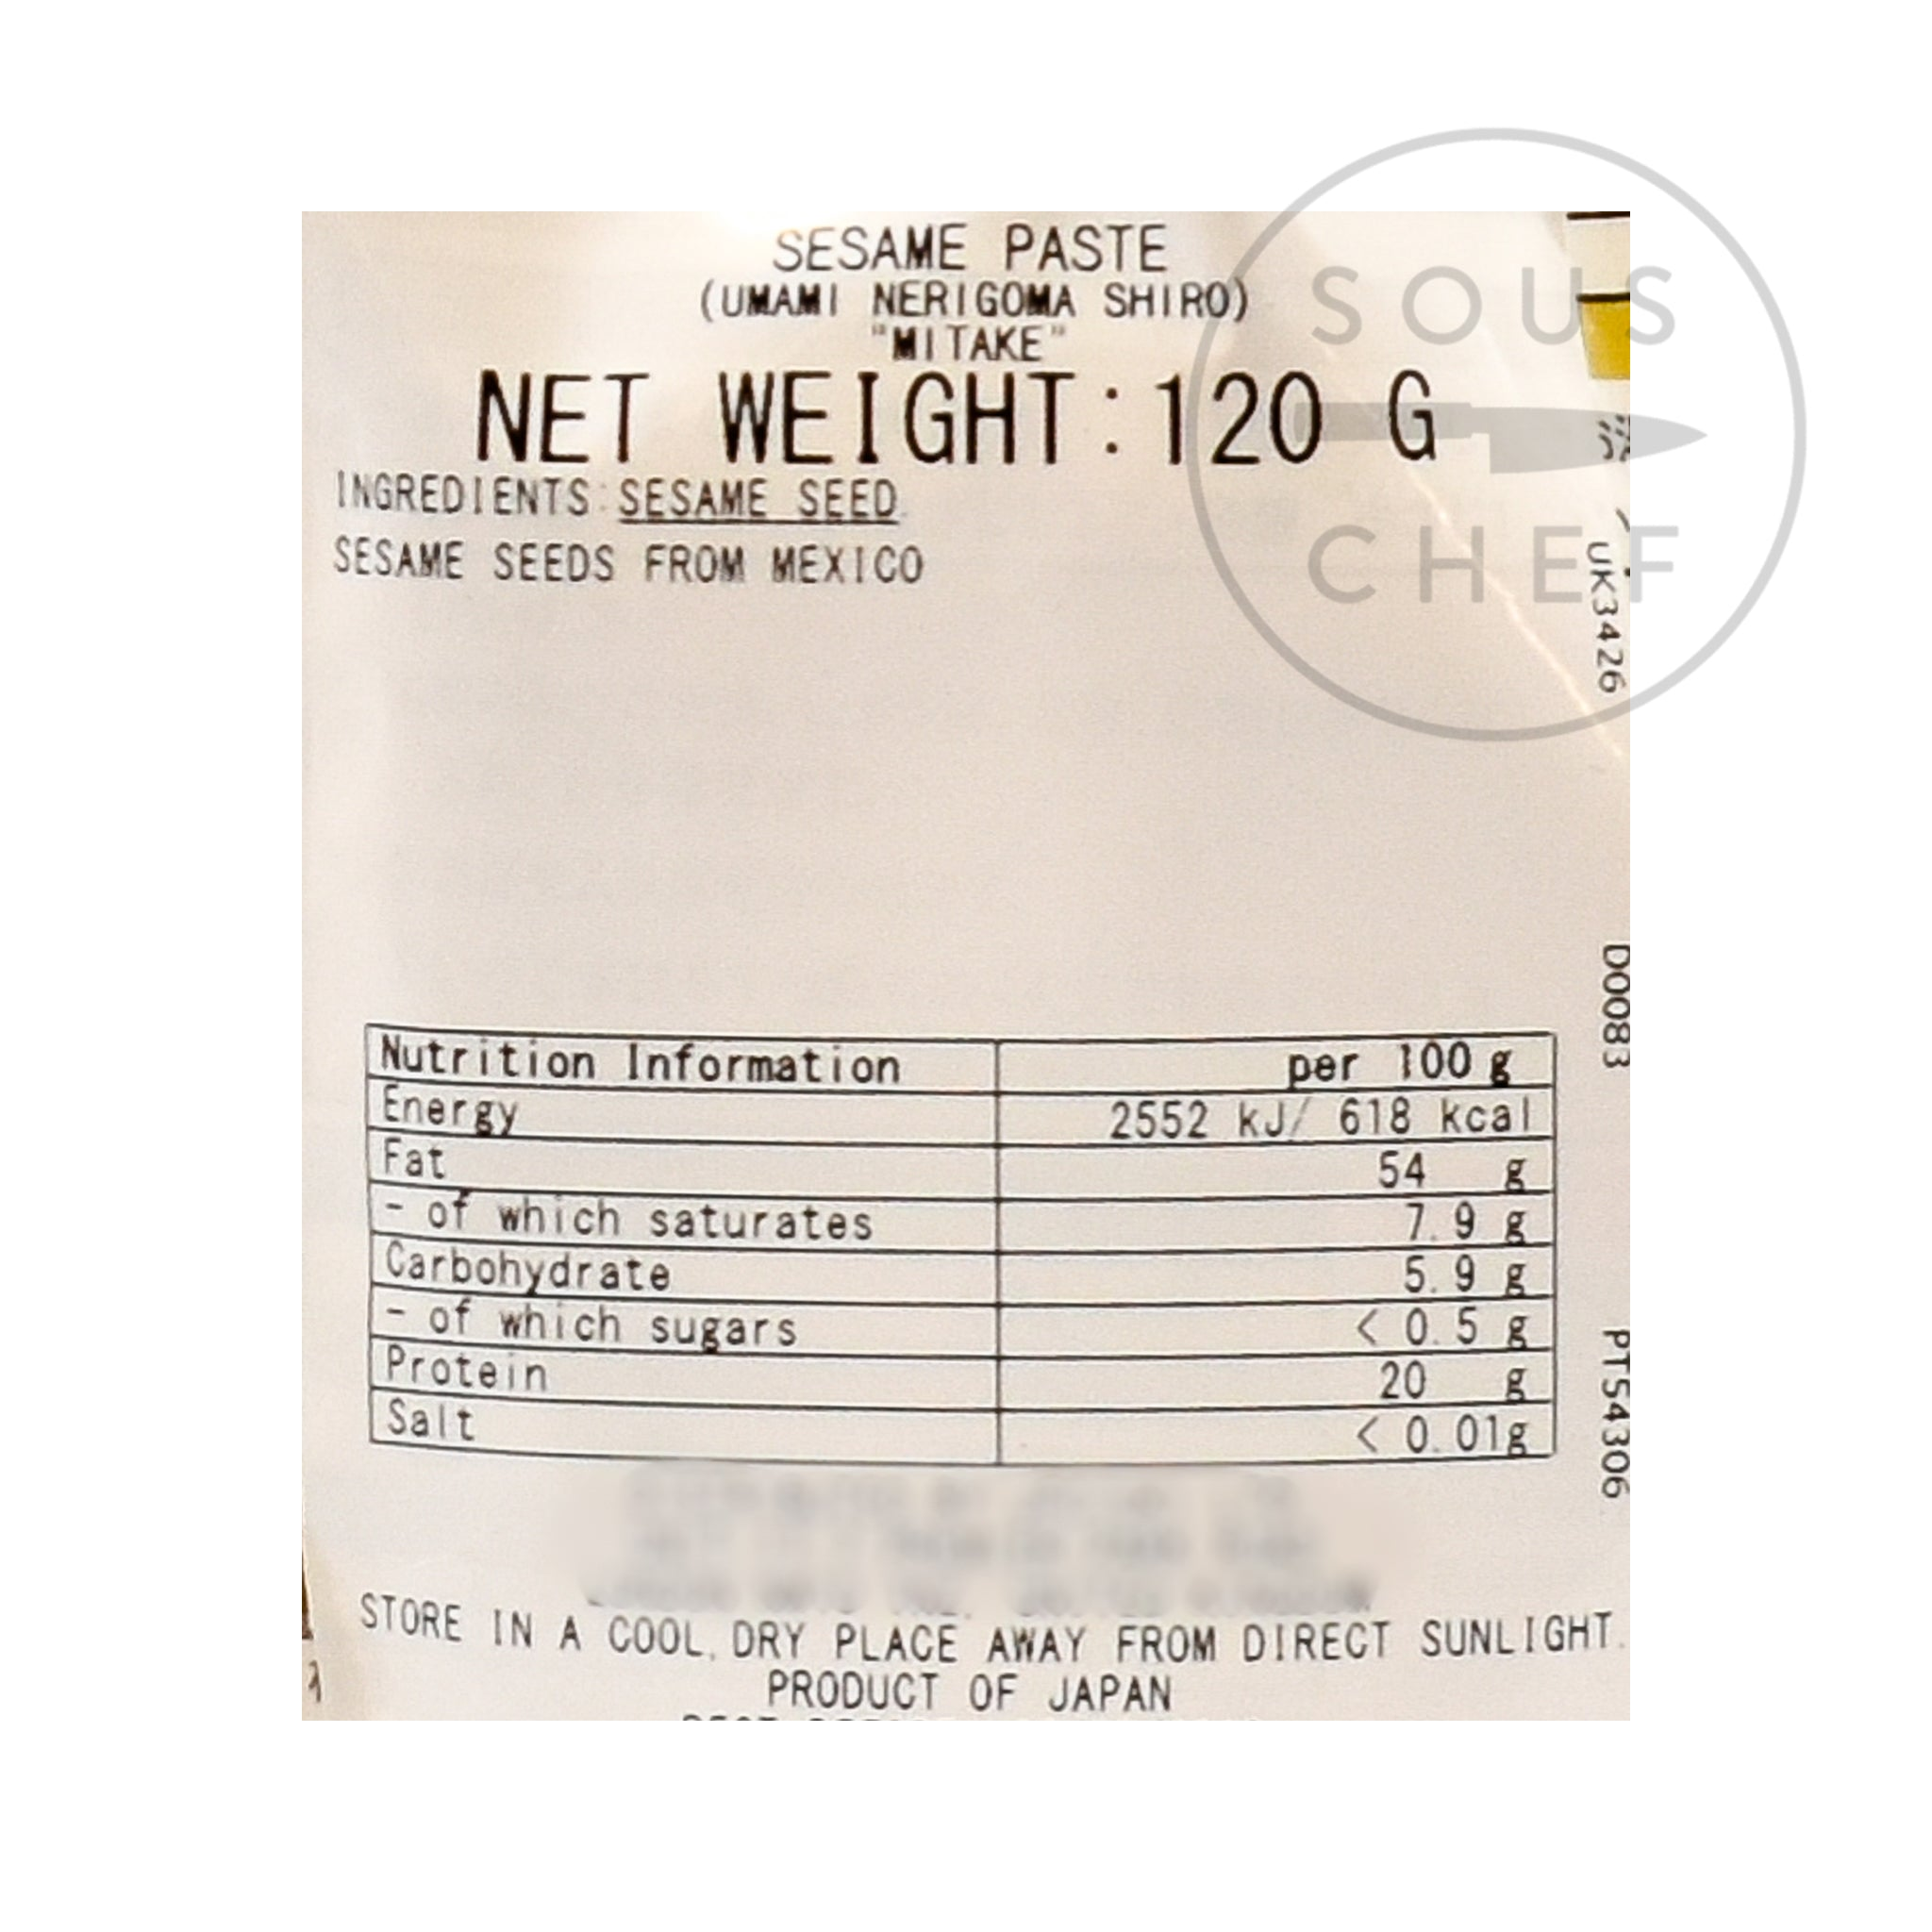 Mitake Umami Nerigoma Shiro - White Sesame Paste 120g nutritional information ingredients